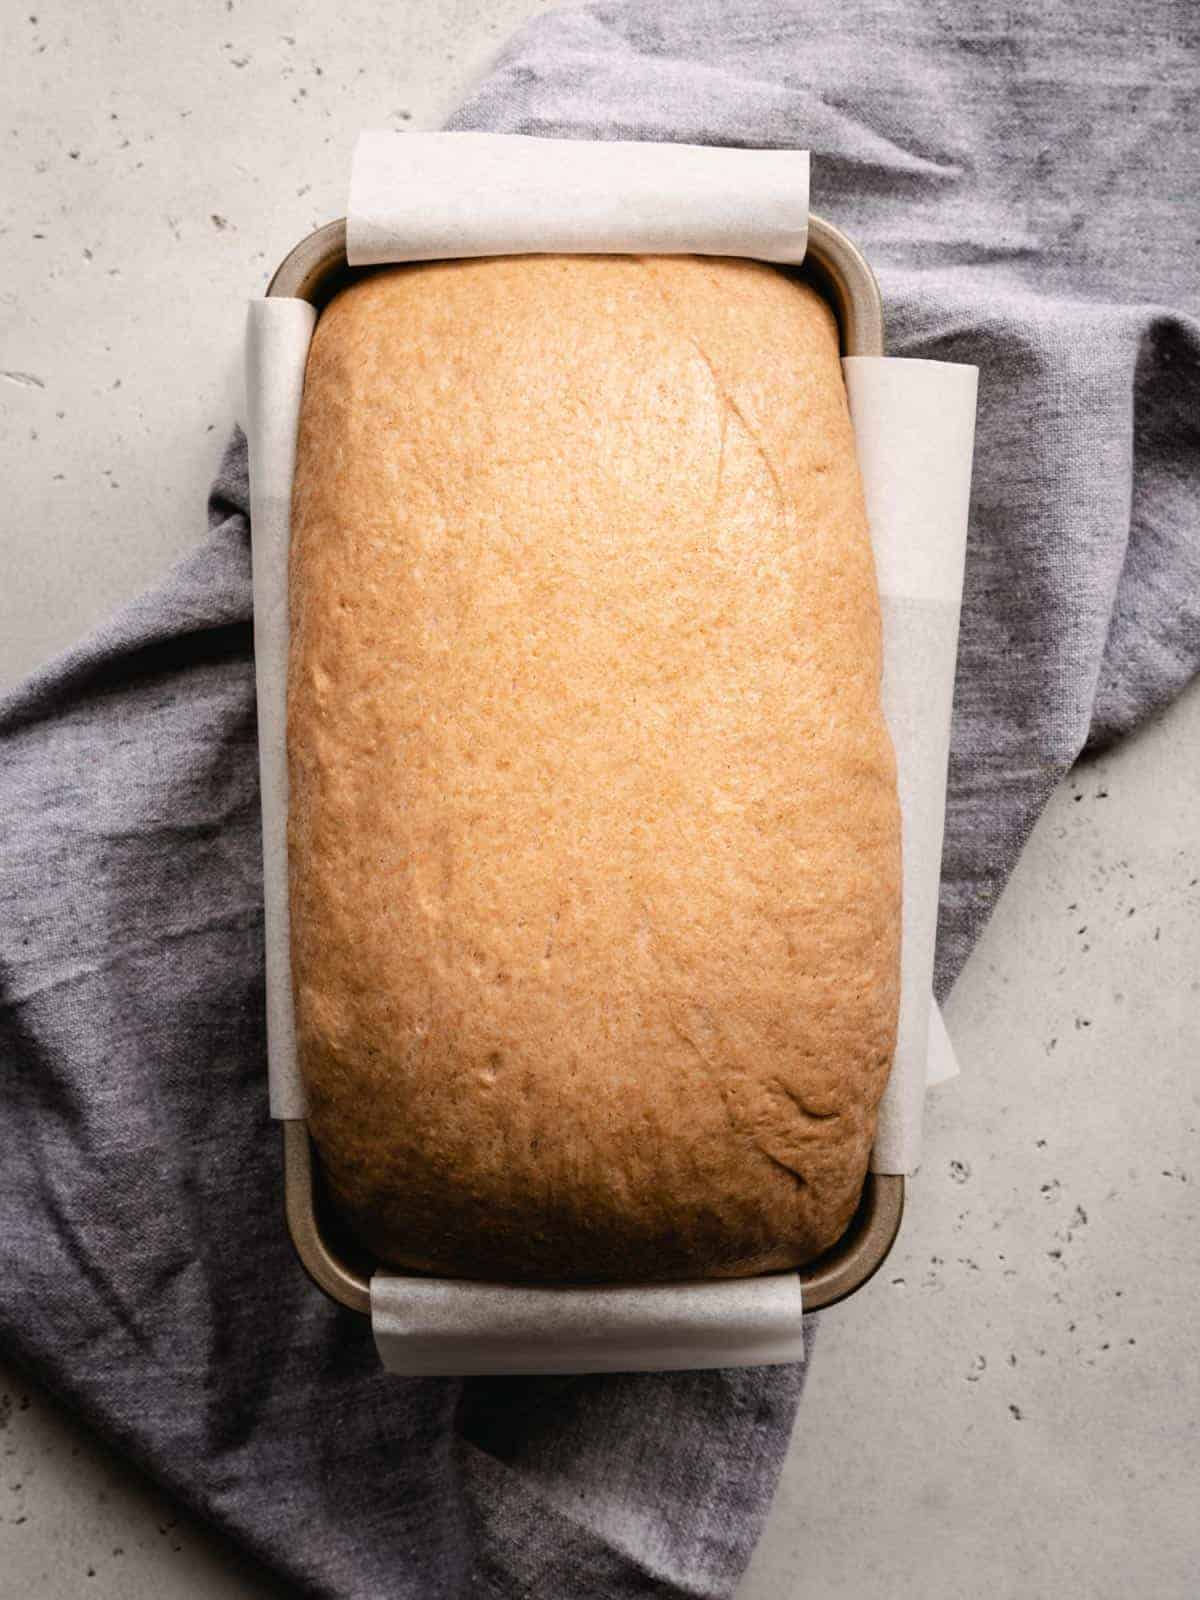 proofed bread dough in a loaf pan